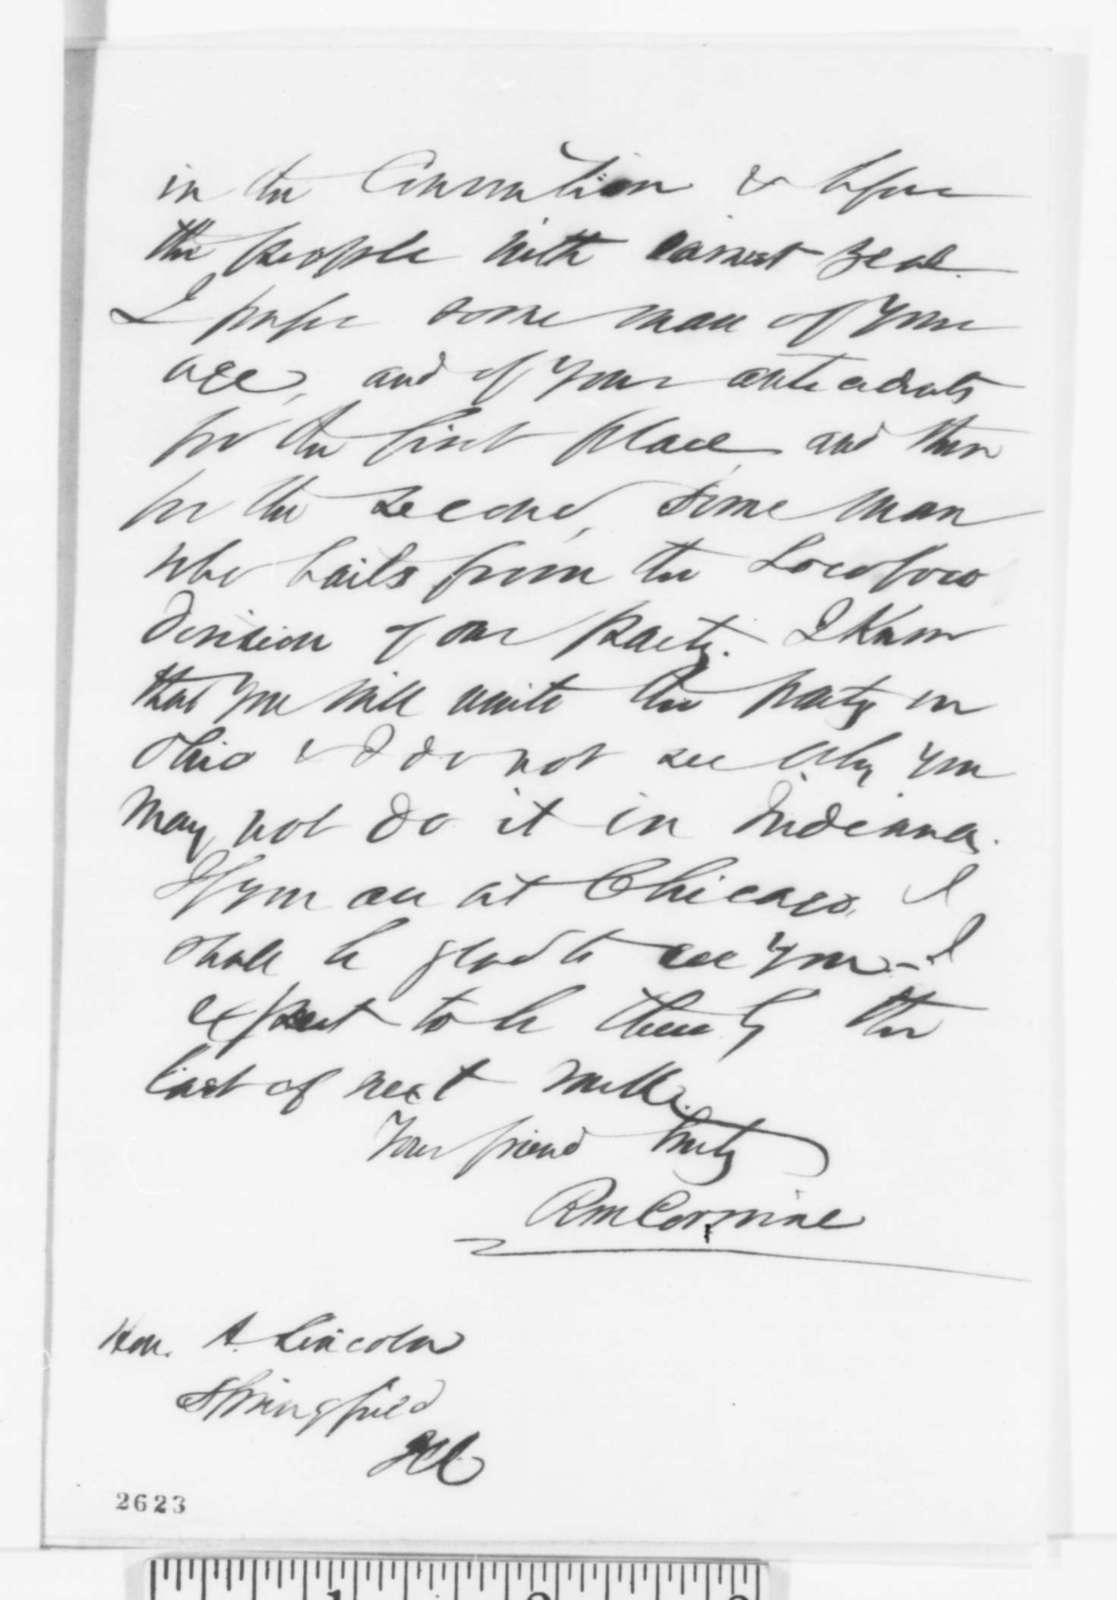 Richard M. Corwine to Abraham Lincoln, Monday, April 30, 1860  (Presidential candidates; with Copy by Abraham Lincoln (precedes original))